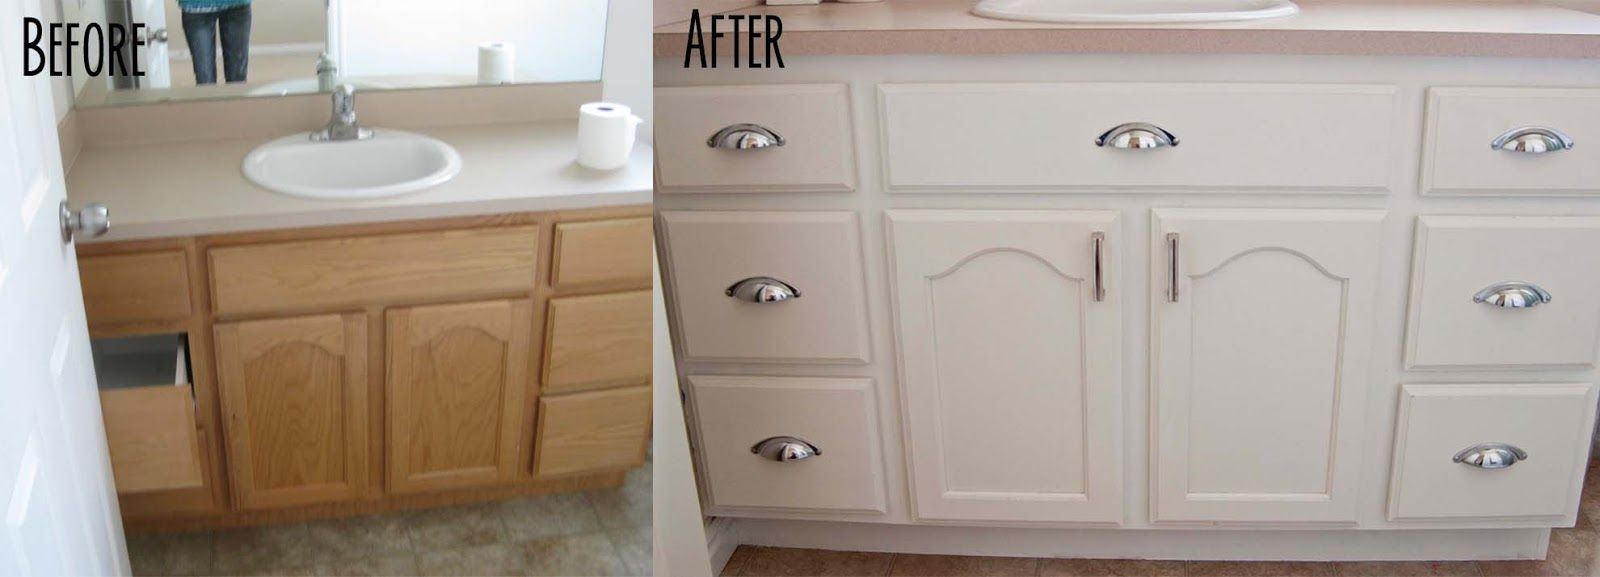 Bathroom vanity painting before and after - Bathroom Vanity Painted Before And After Need Your Bathroom Madeover Quick Astrong Construction Www Bathroommakeoverssouthbend Com Pinterest Bathroom